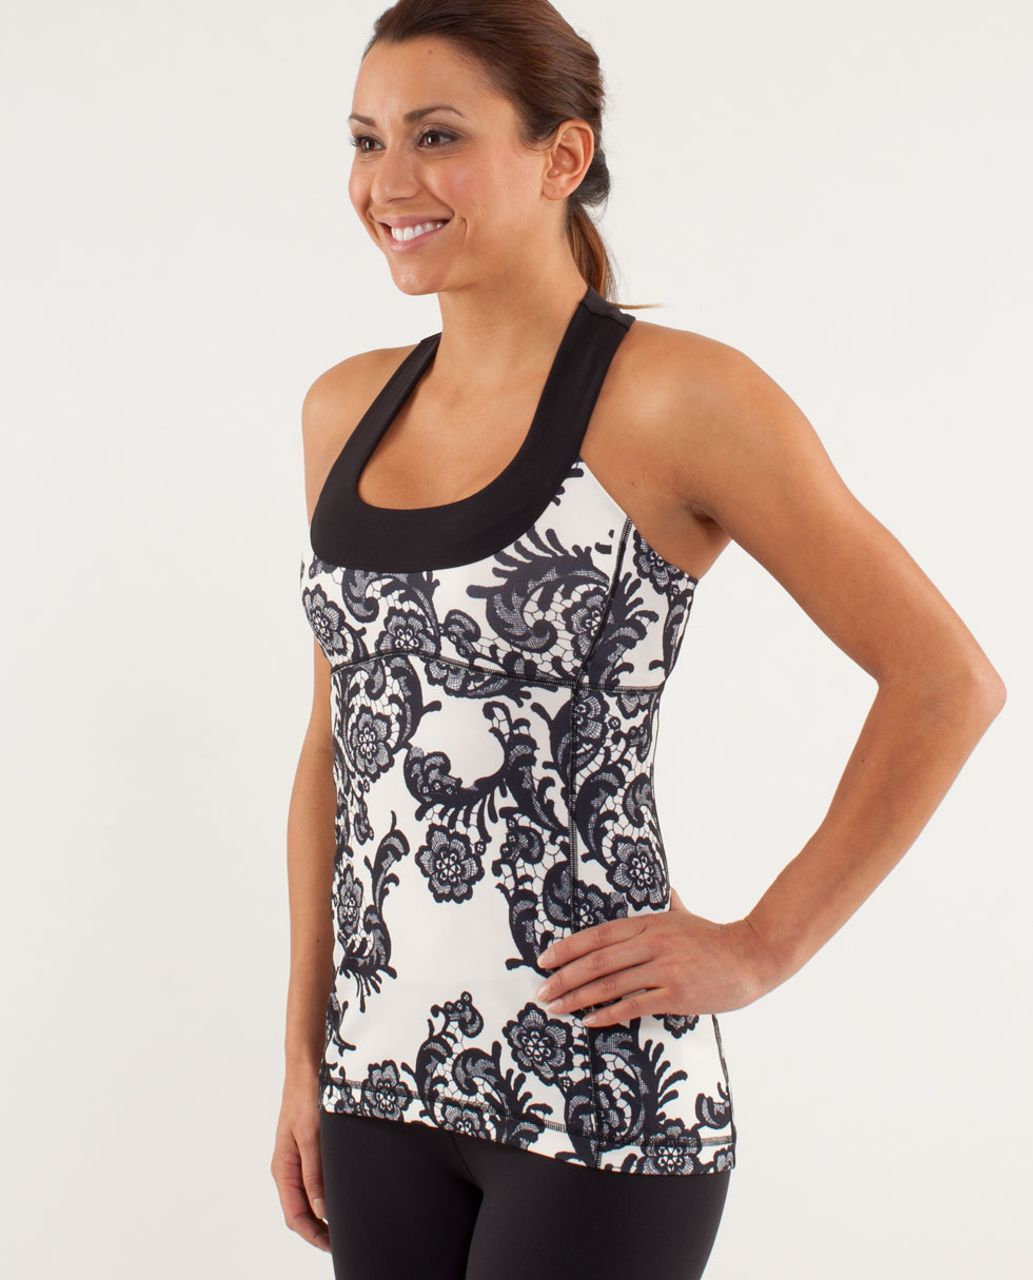 Lululemon Scoop Neck Tank - Laceoflage Polar Cream Black / Black